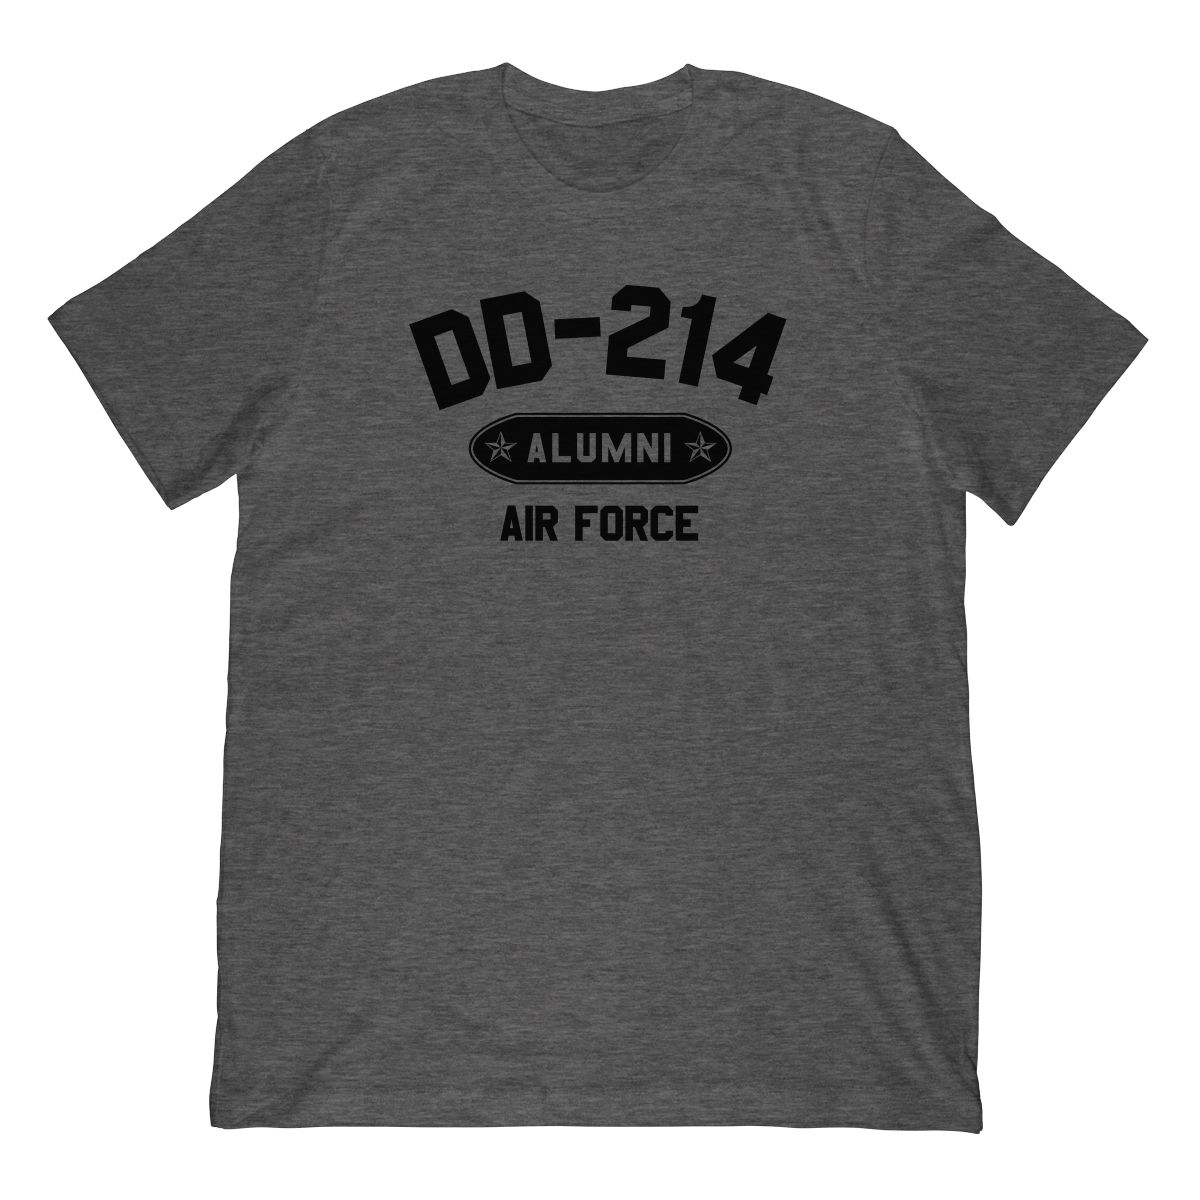 DD-214 Alumni Air Force In Black (Stamp Look) T-Shirt